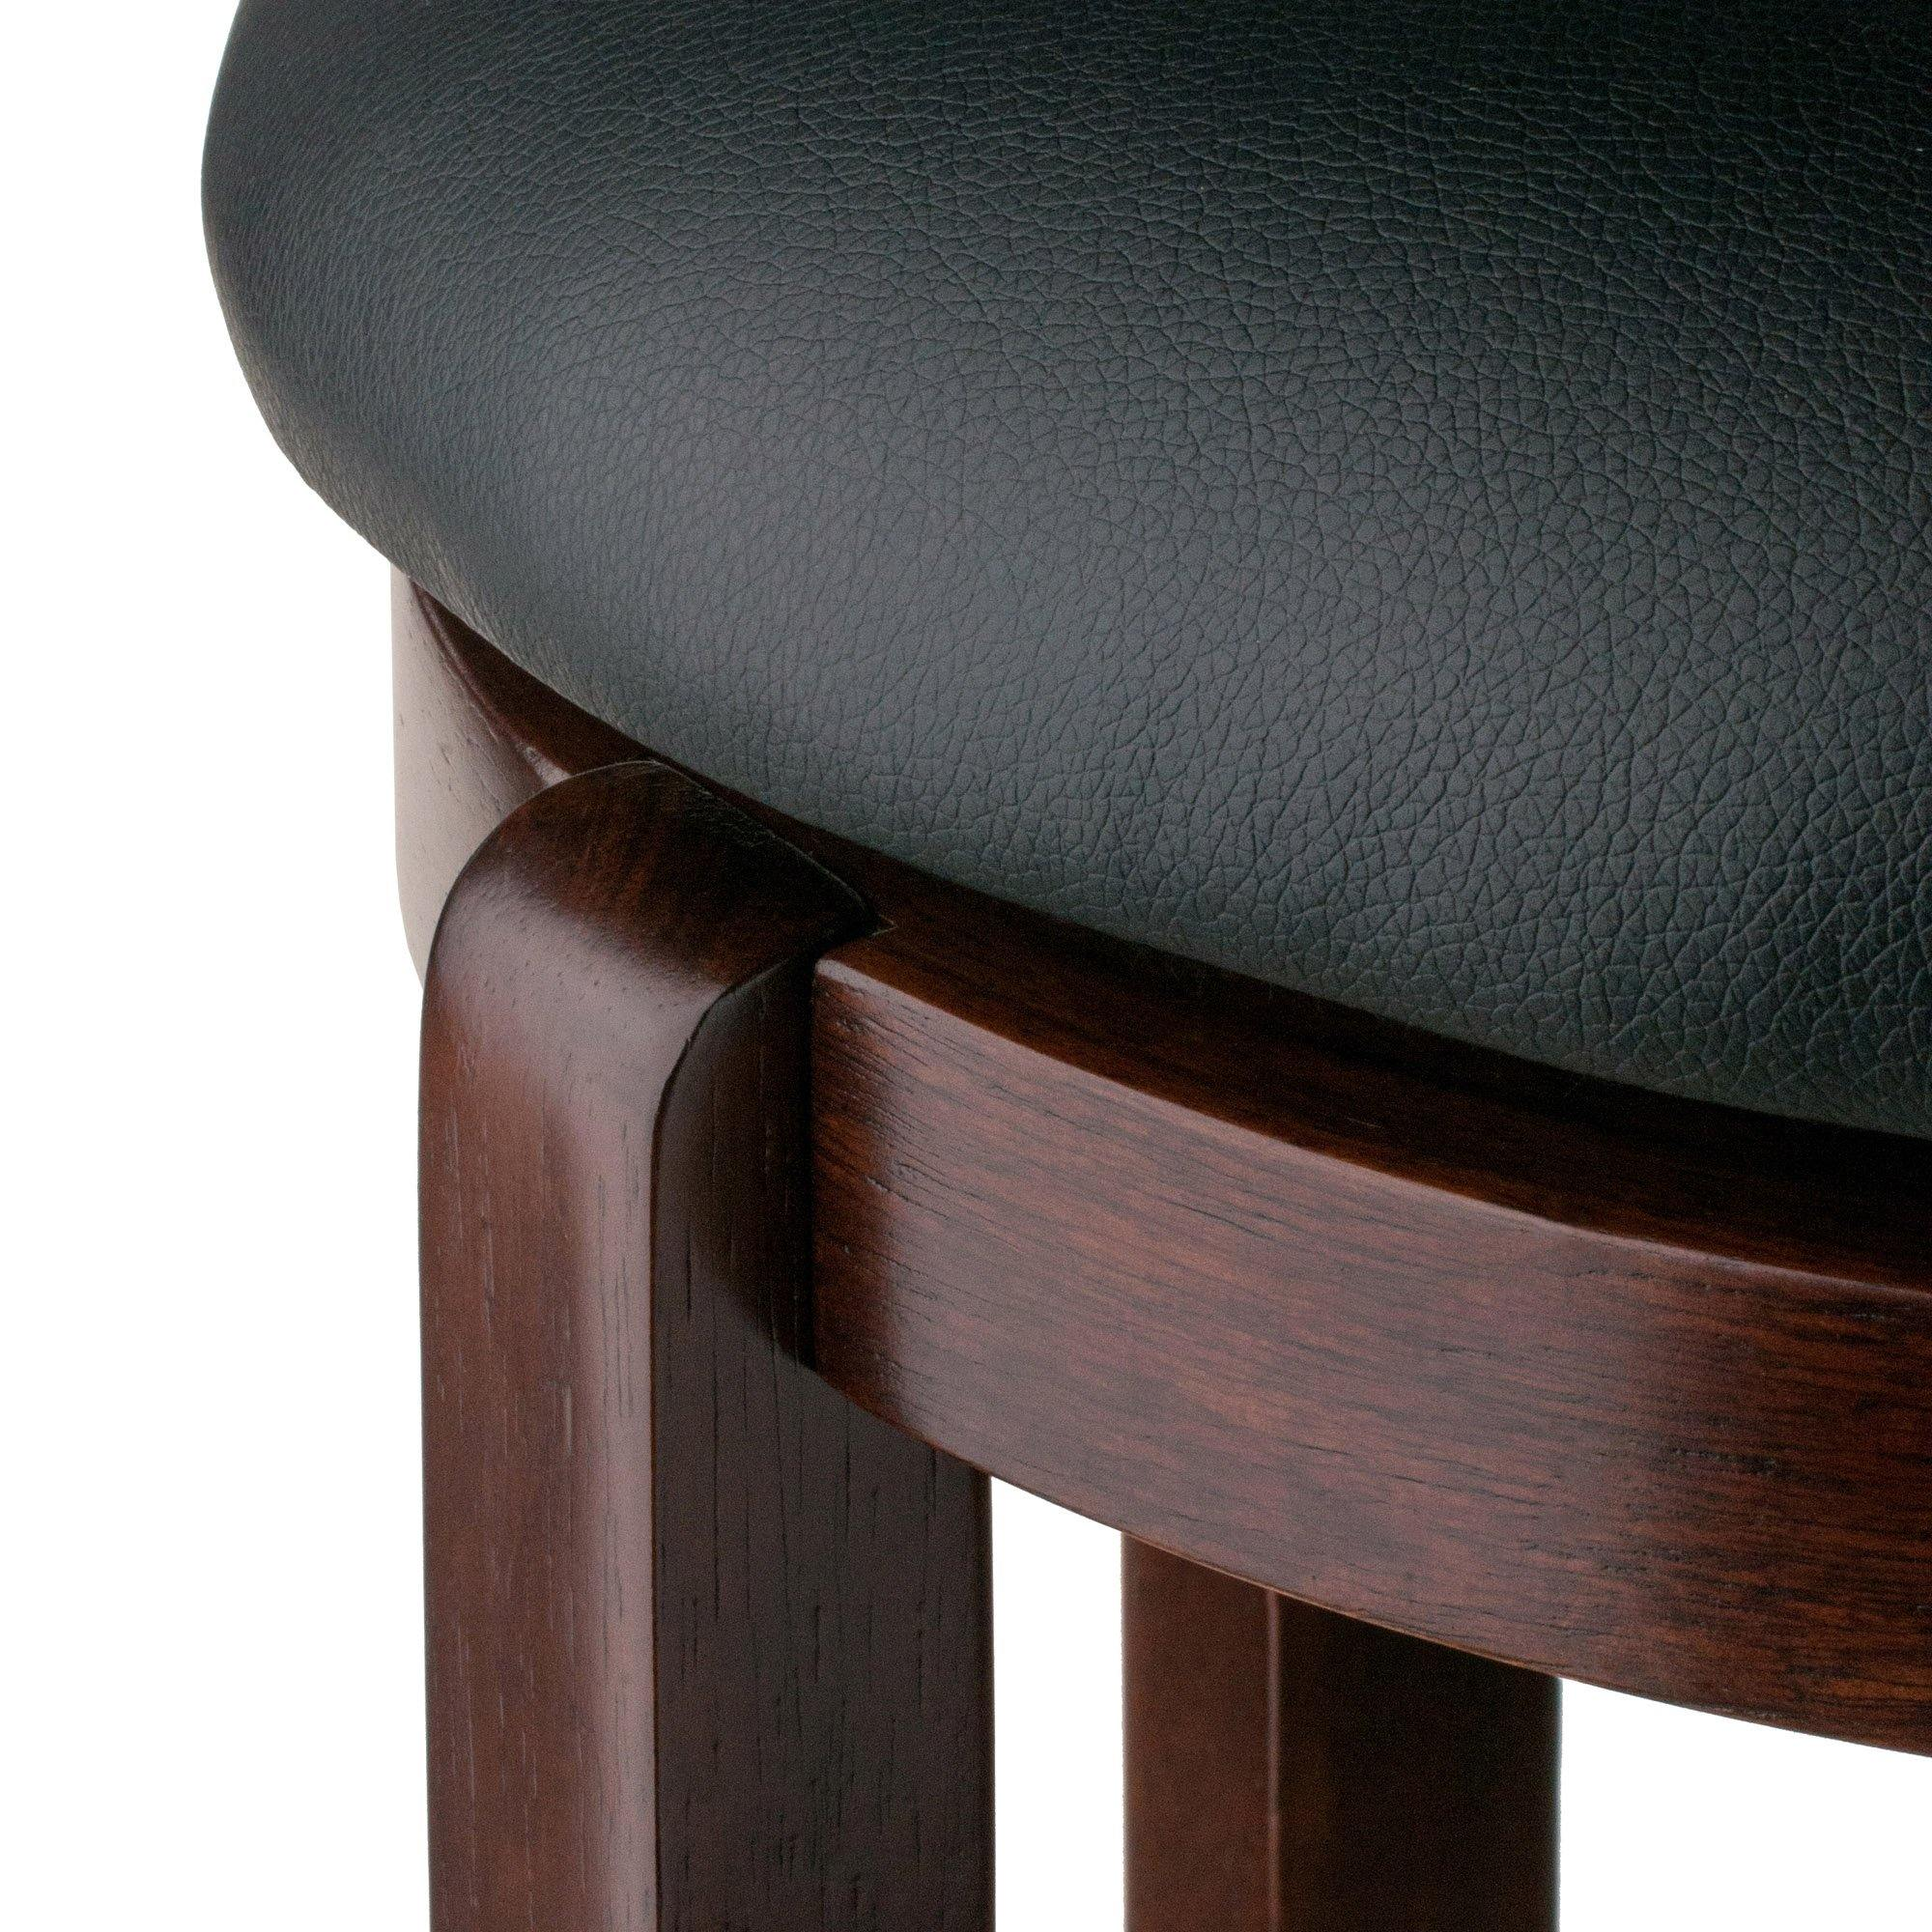 Walcott Swivel Seat Bar Stool, Black & Walnut - My USA Furniture